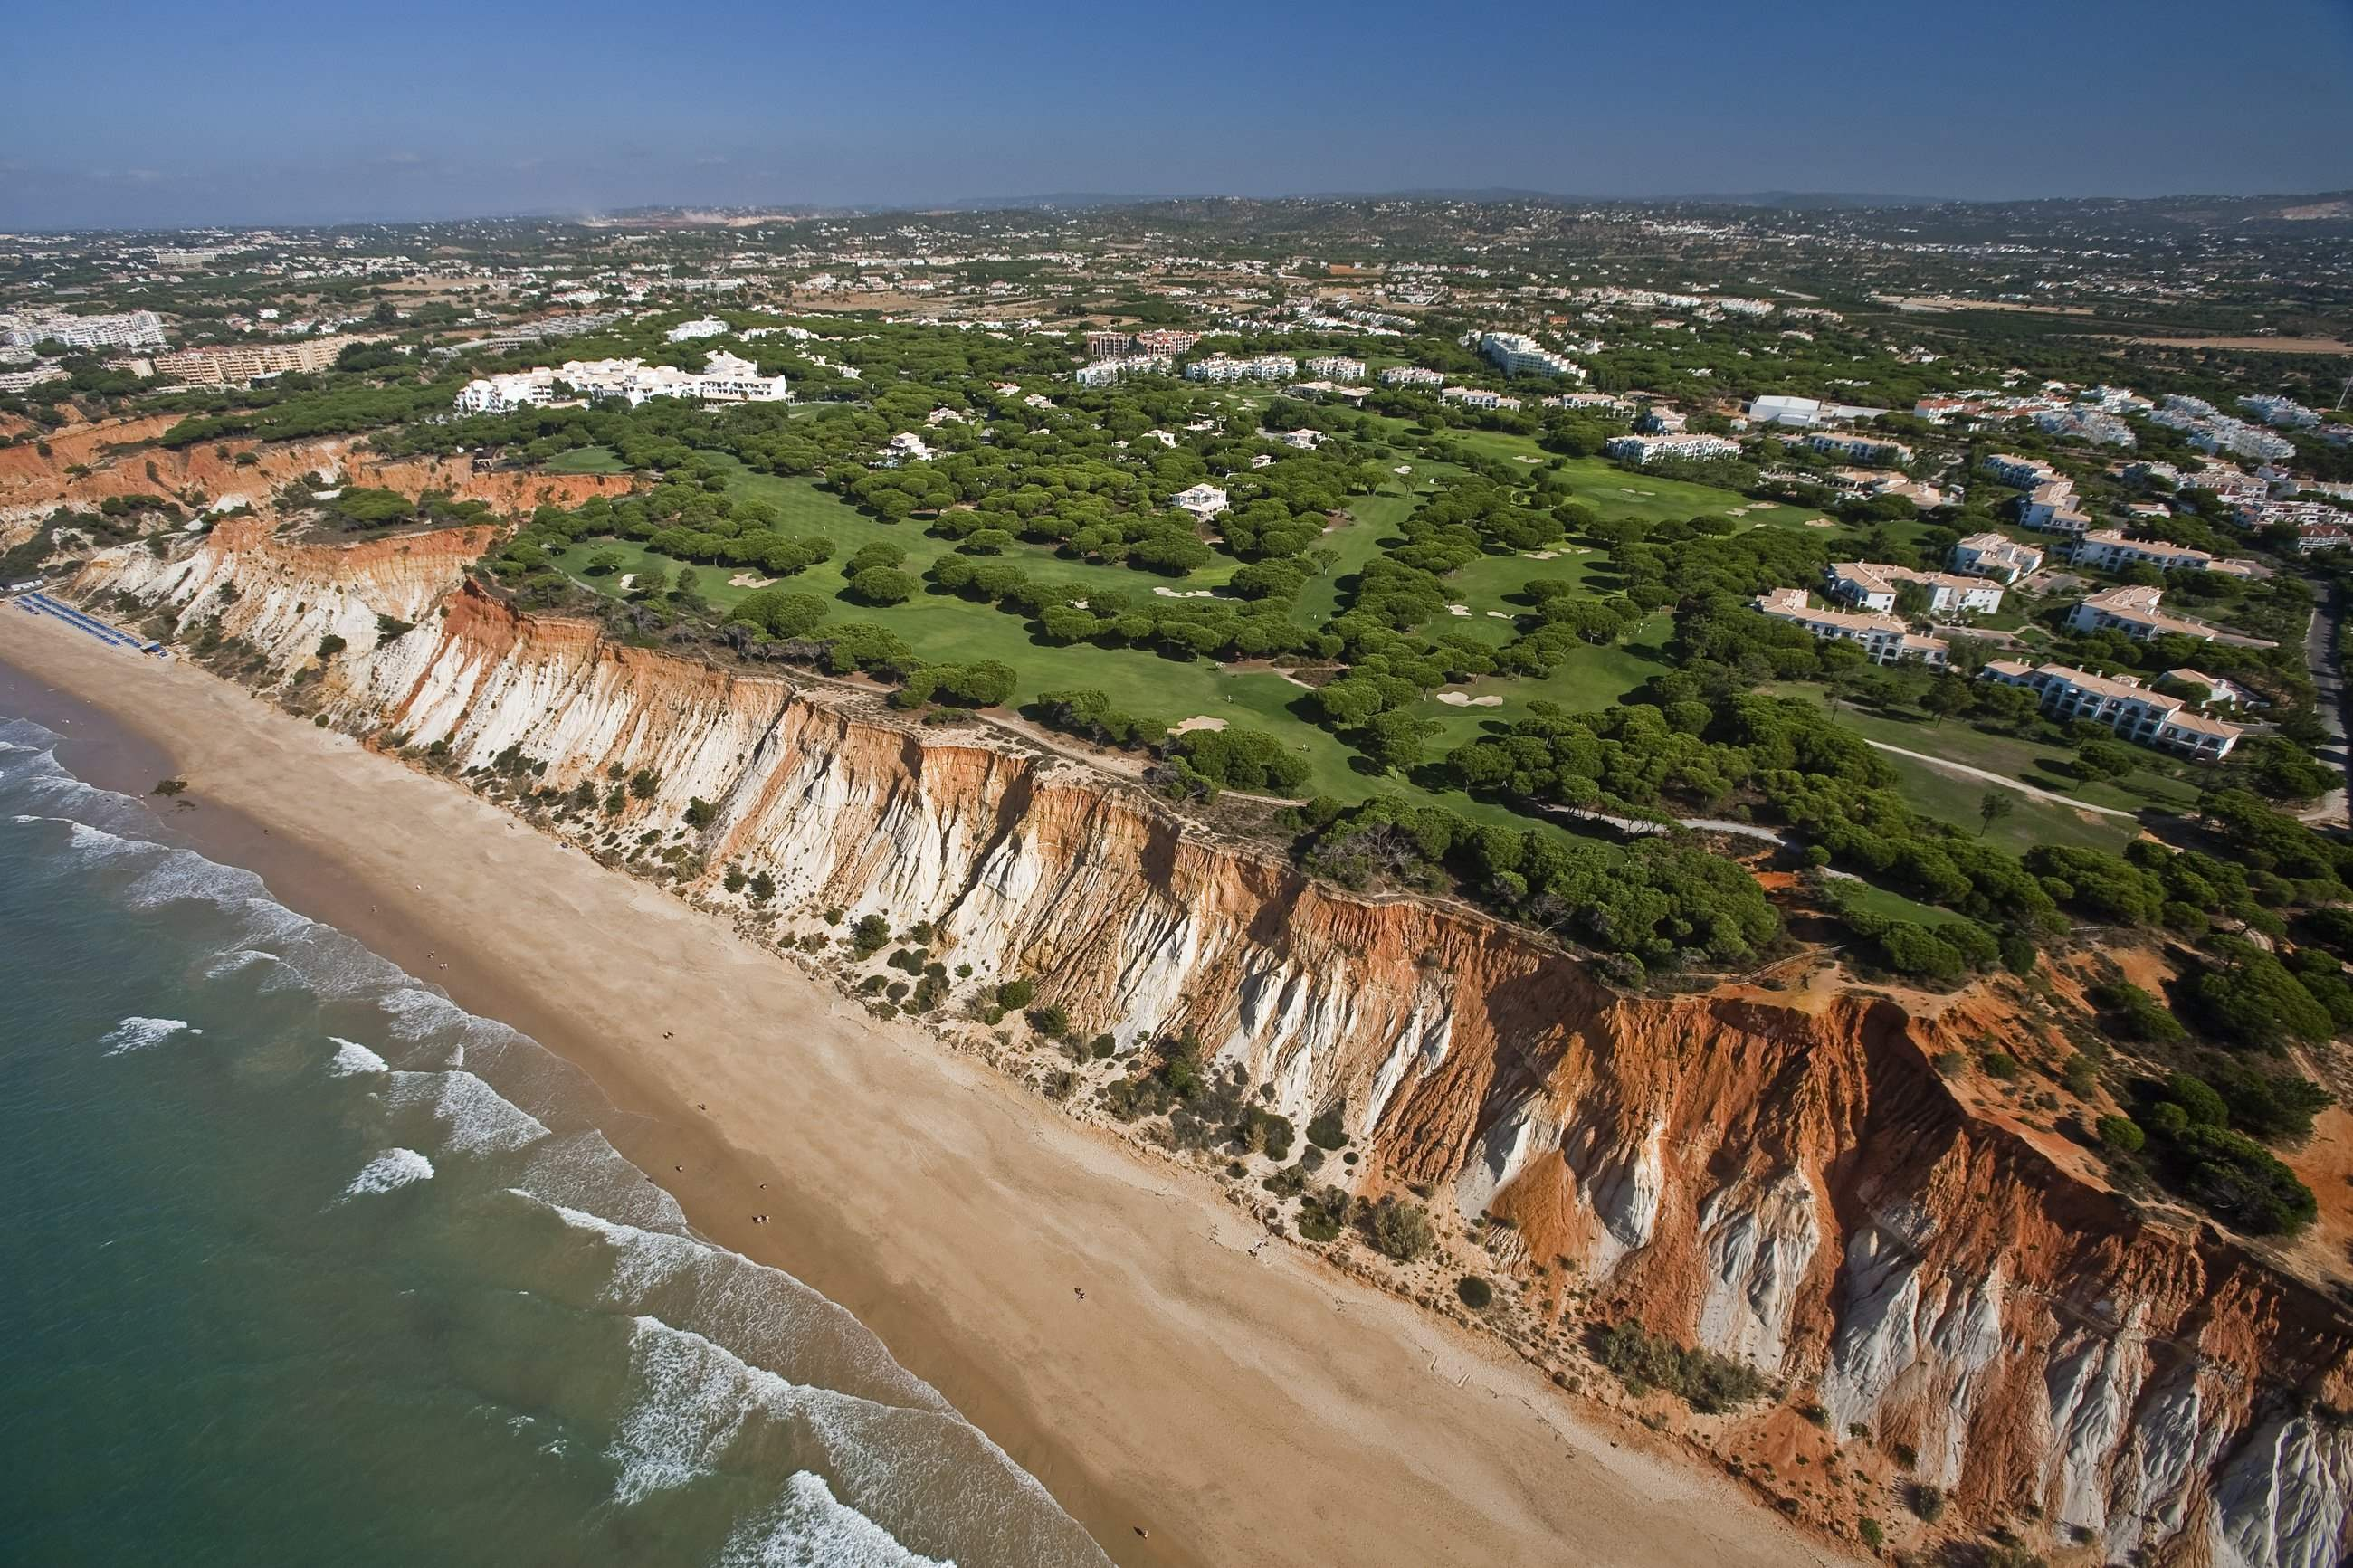 Pine Cliffs Gardens, Two Bedroom Suite, S/C Basis, 2 bedroom apartment in Pine Cliffs Resort, Algarve Photo #22